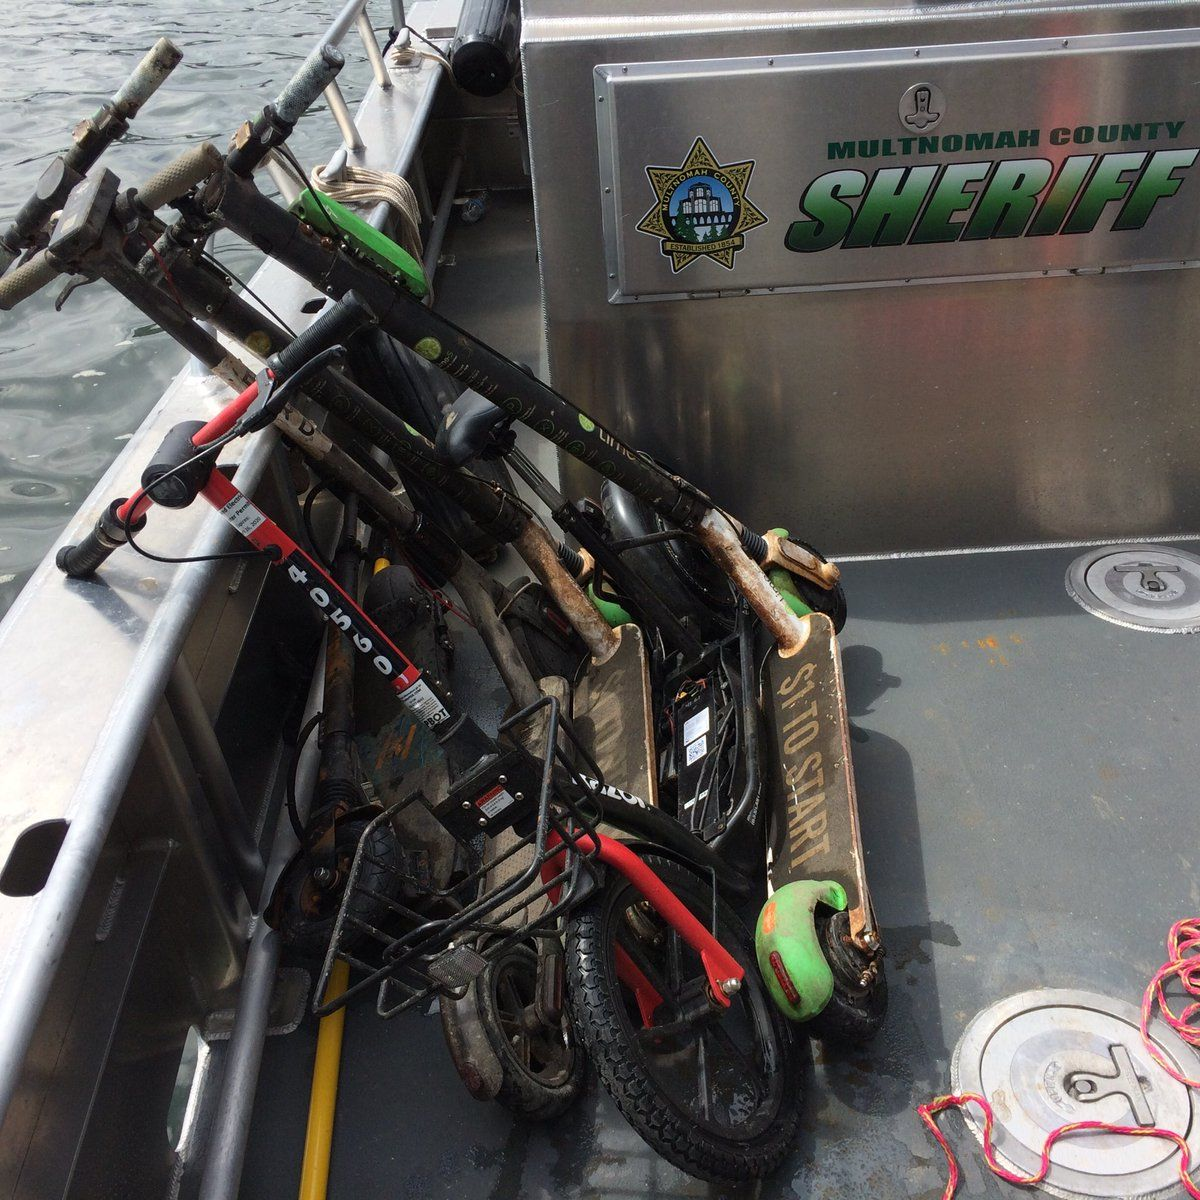 River Patrol Dive Team recovers e-scooters while cleaning Willamette River sea wall - Multnomah County Sheriff's Office photo